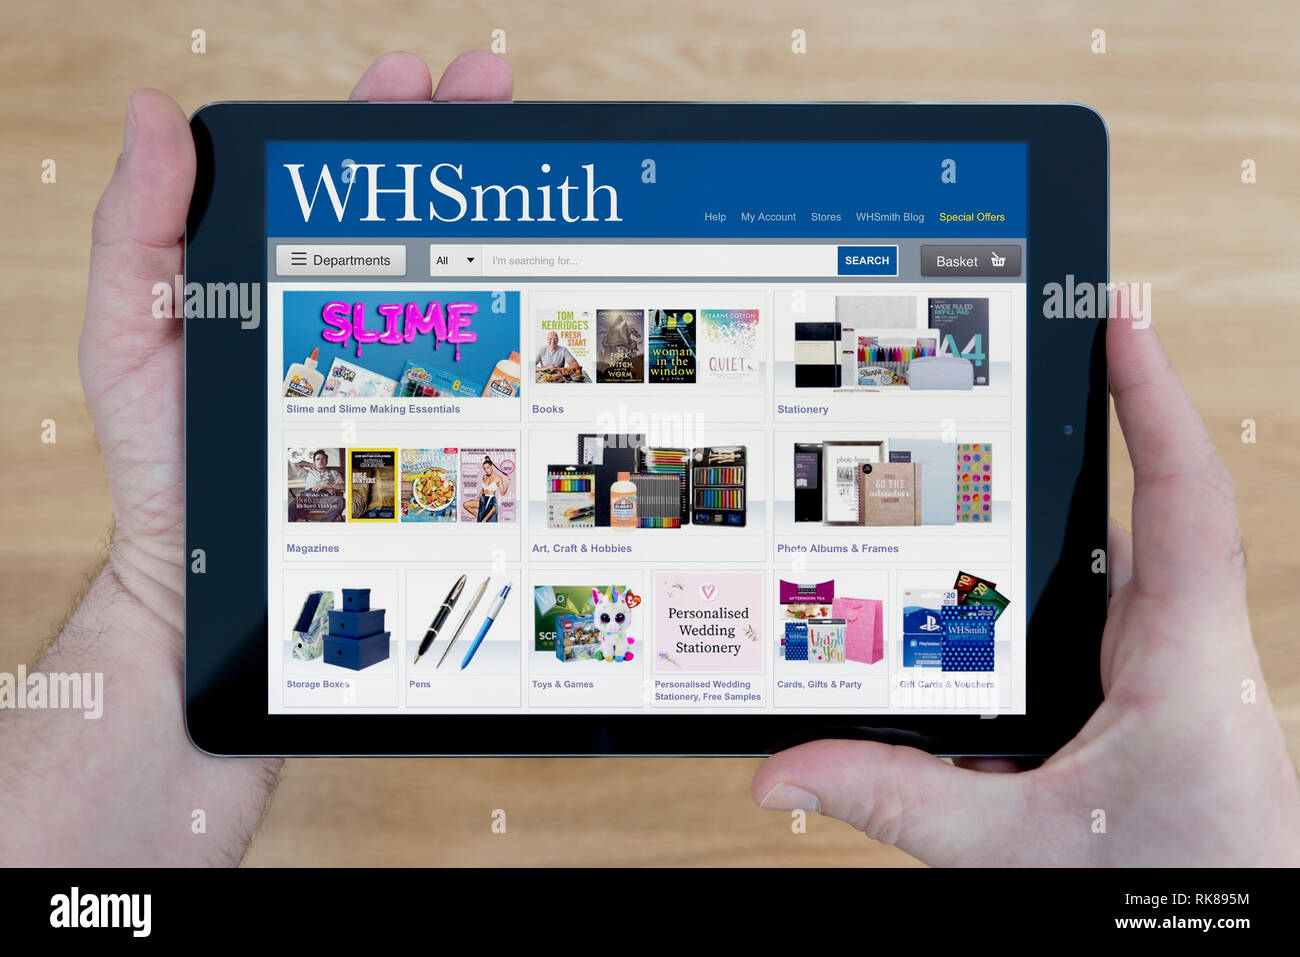 A man looks at the WH Smith website on his iPad tablet device, shot against a wooden table top background (Editorial use only). - Stock Image